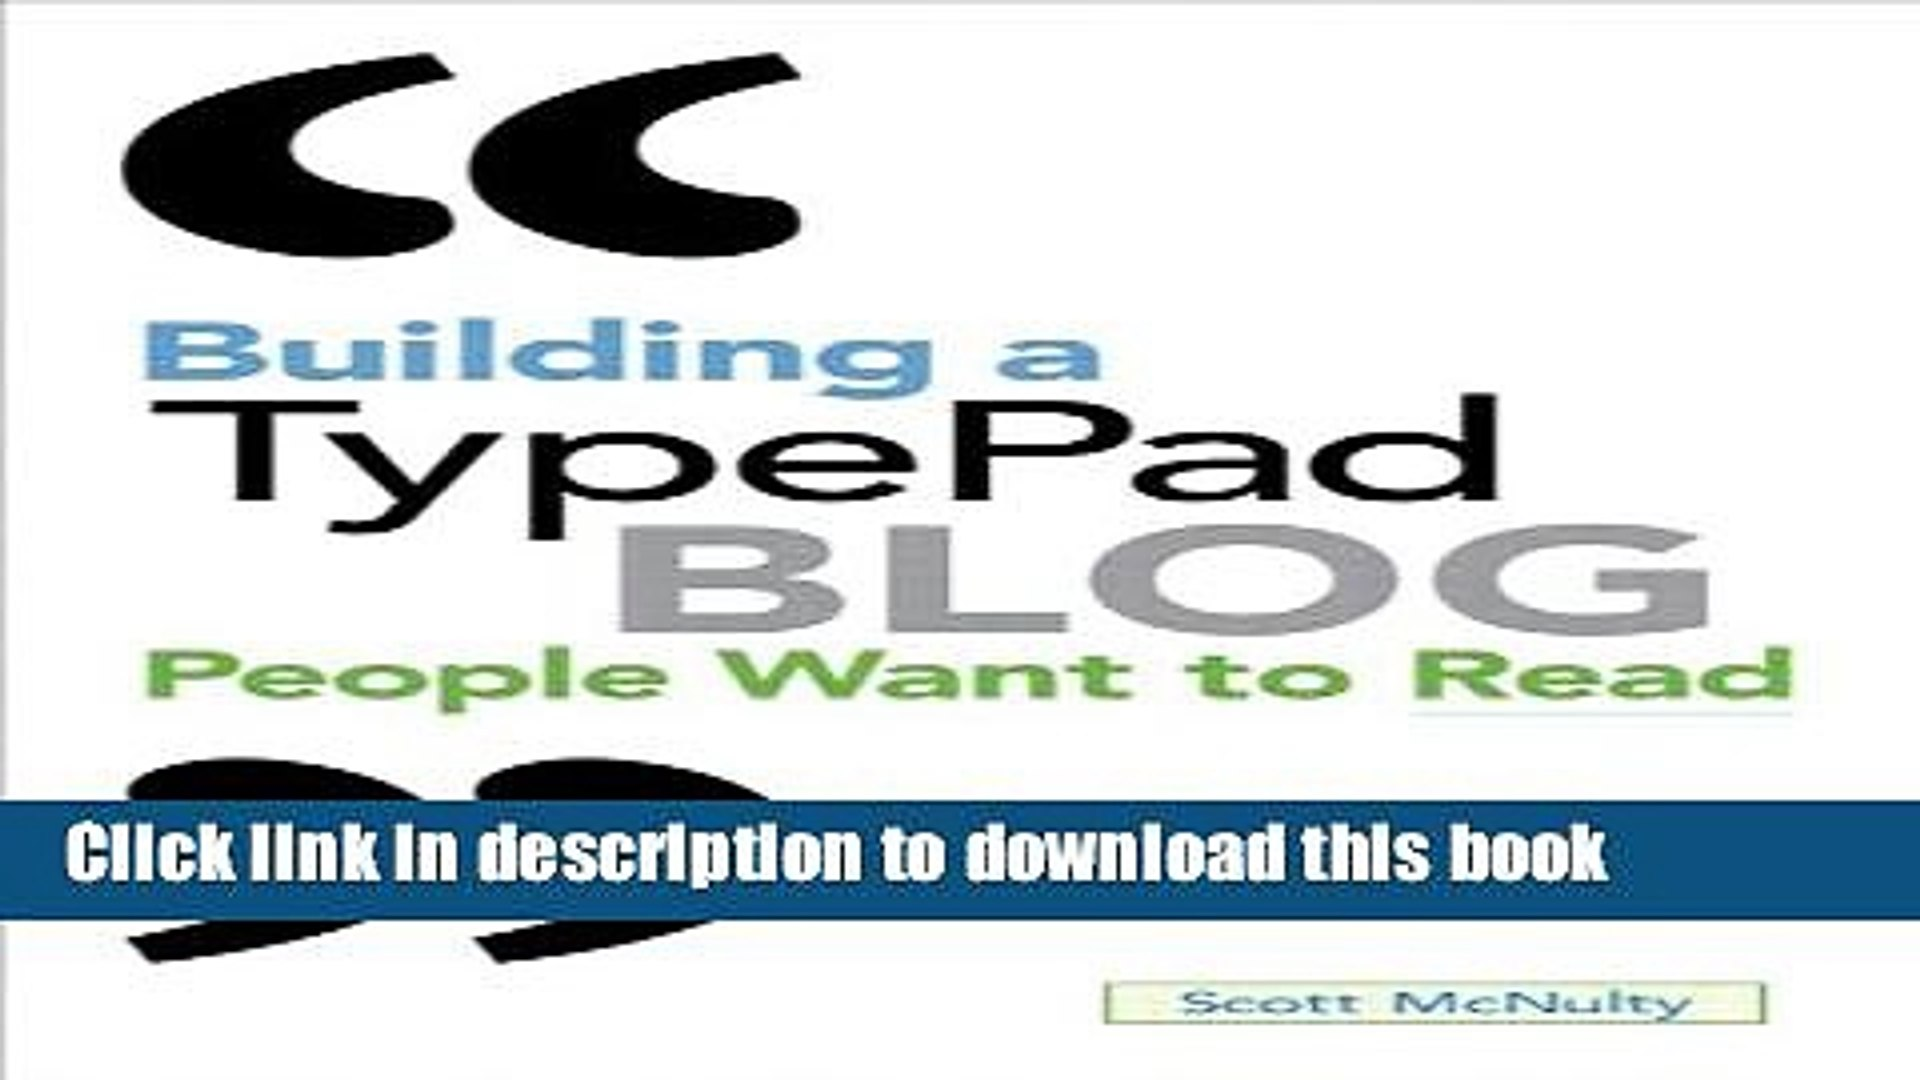 Read Building a TypePad Blog People Want to Read Ebook Free